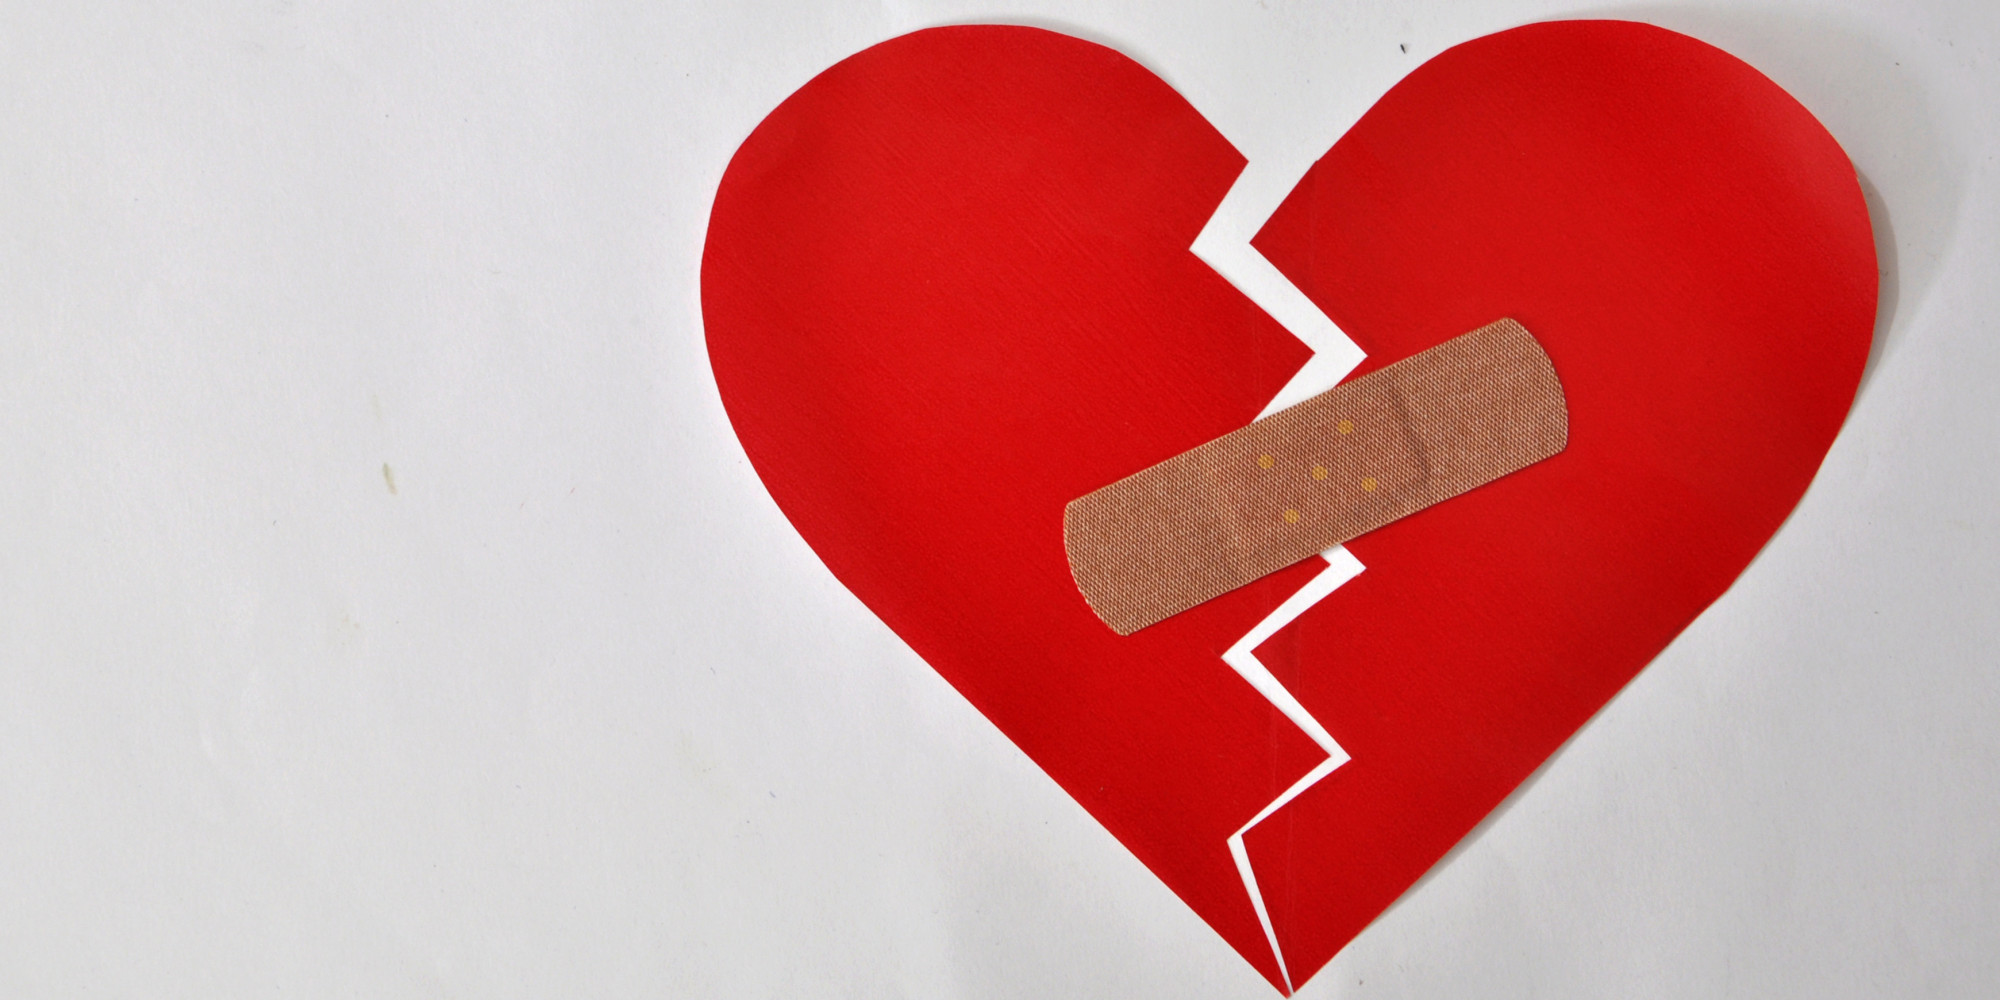 Broken Heart: Can A Broken Heart Really Break Your Heart?